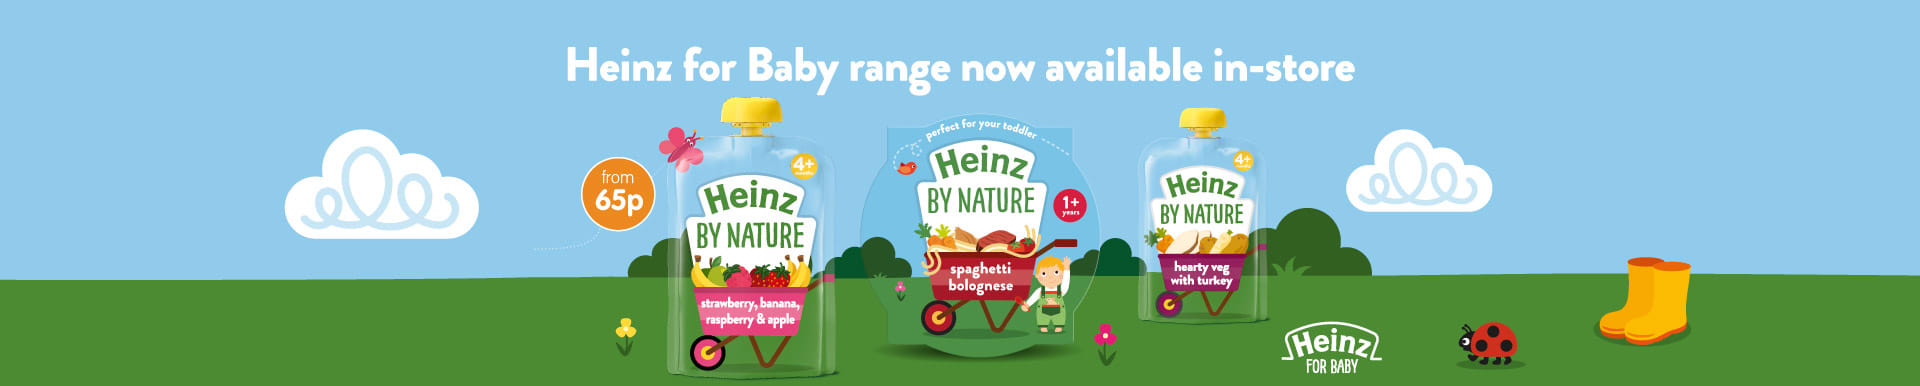 Heinz By Nature now in store at B&M.